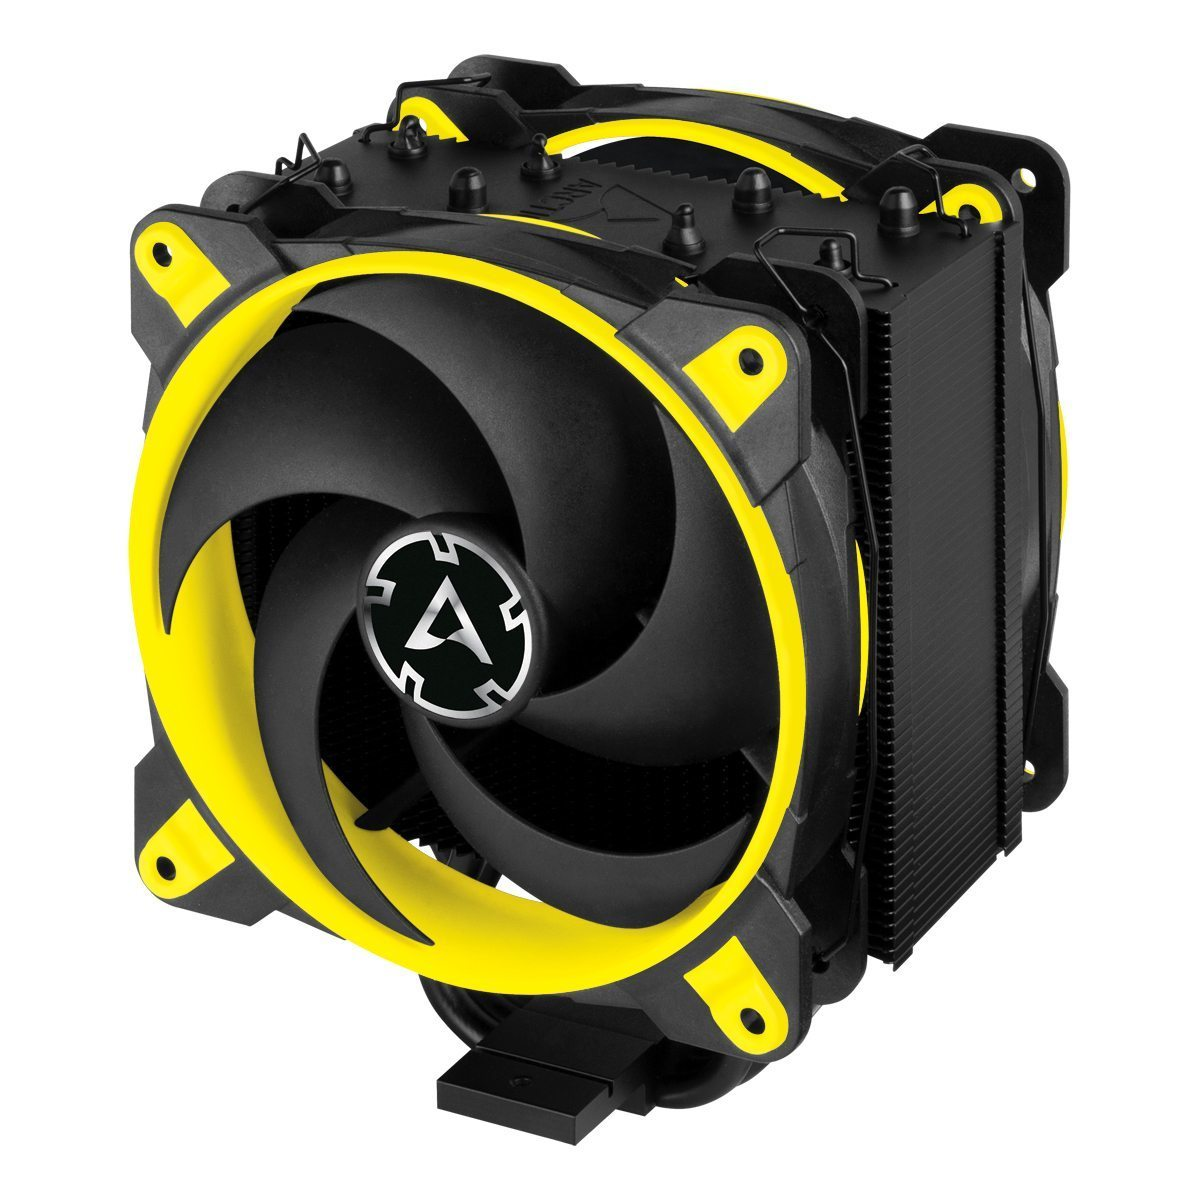 Arctic Freezer 34 eSports DUO - Yellow - LGA2066/LGA2011/LGA1151/AM4